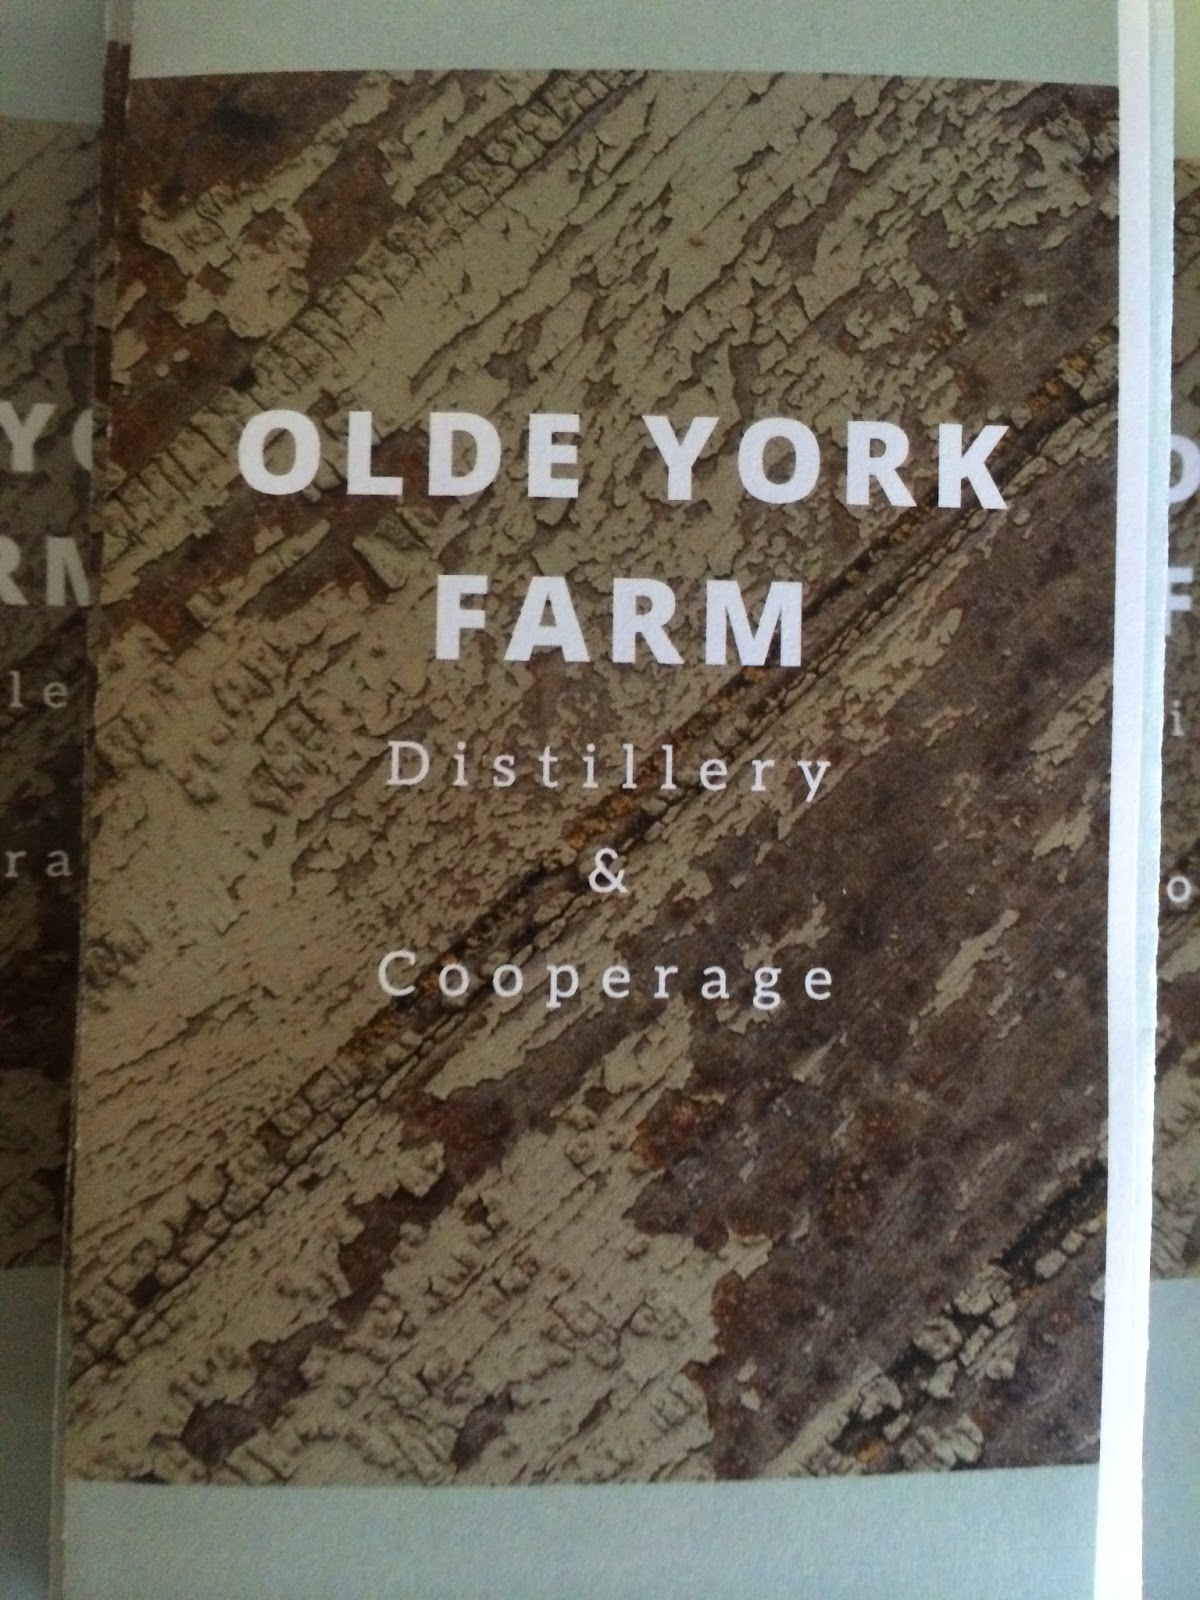 Olde York Farm Distilling